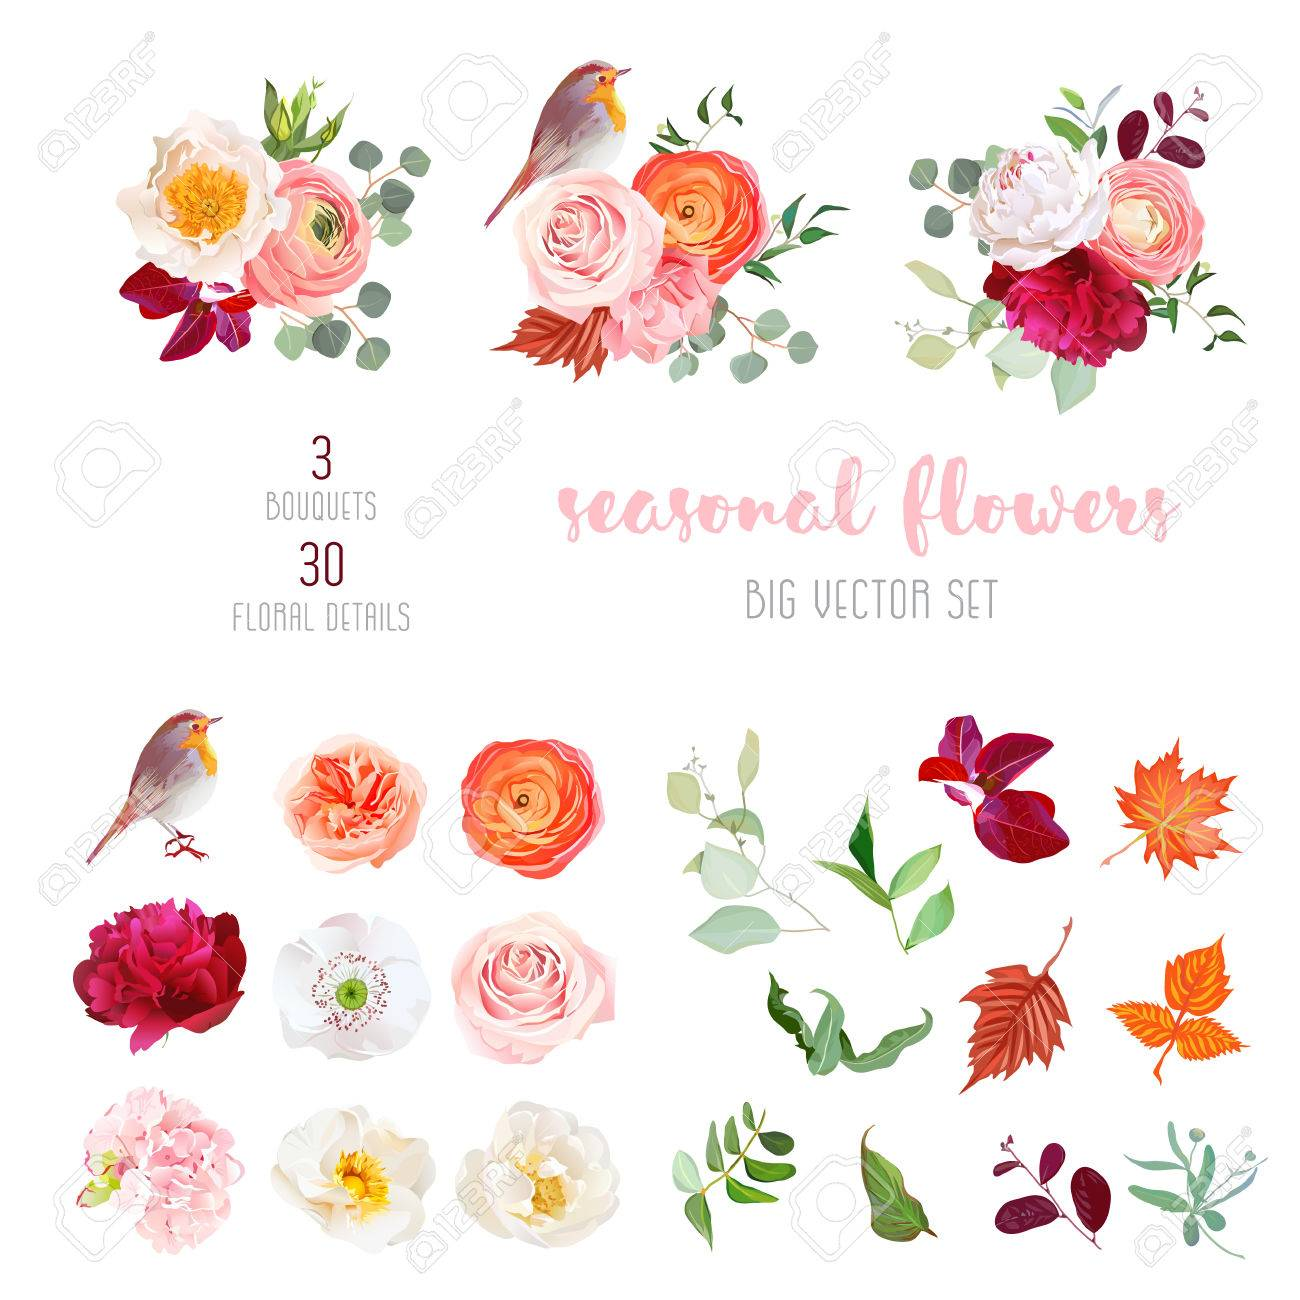 Mix of seasonal plants anf flowers big vector collection - 81715731